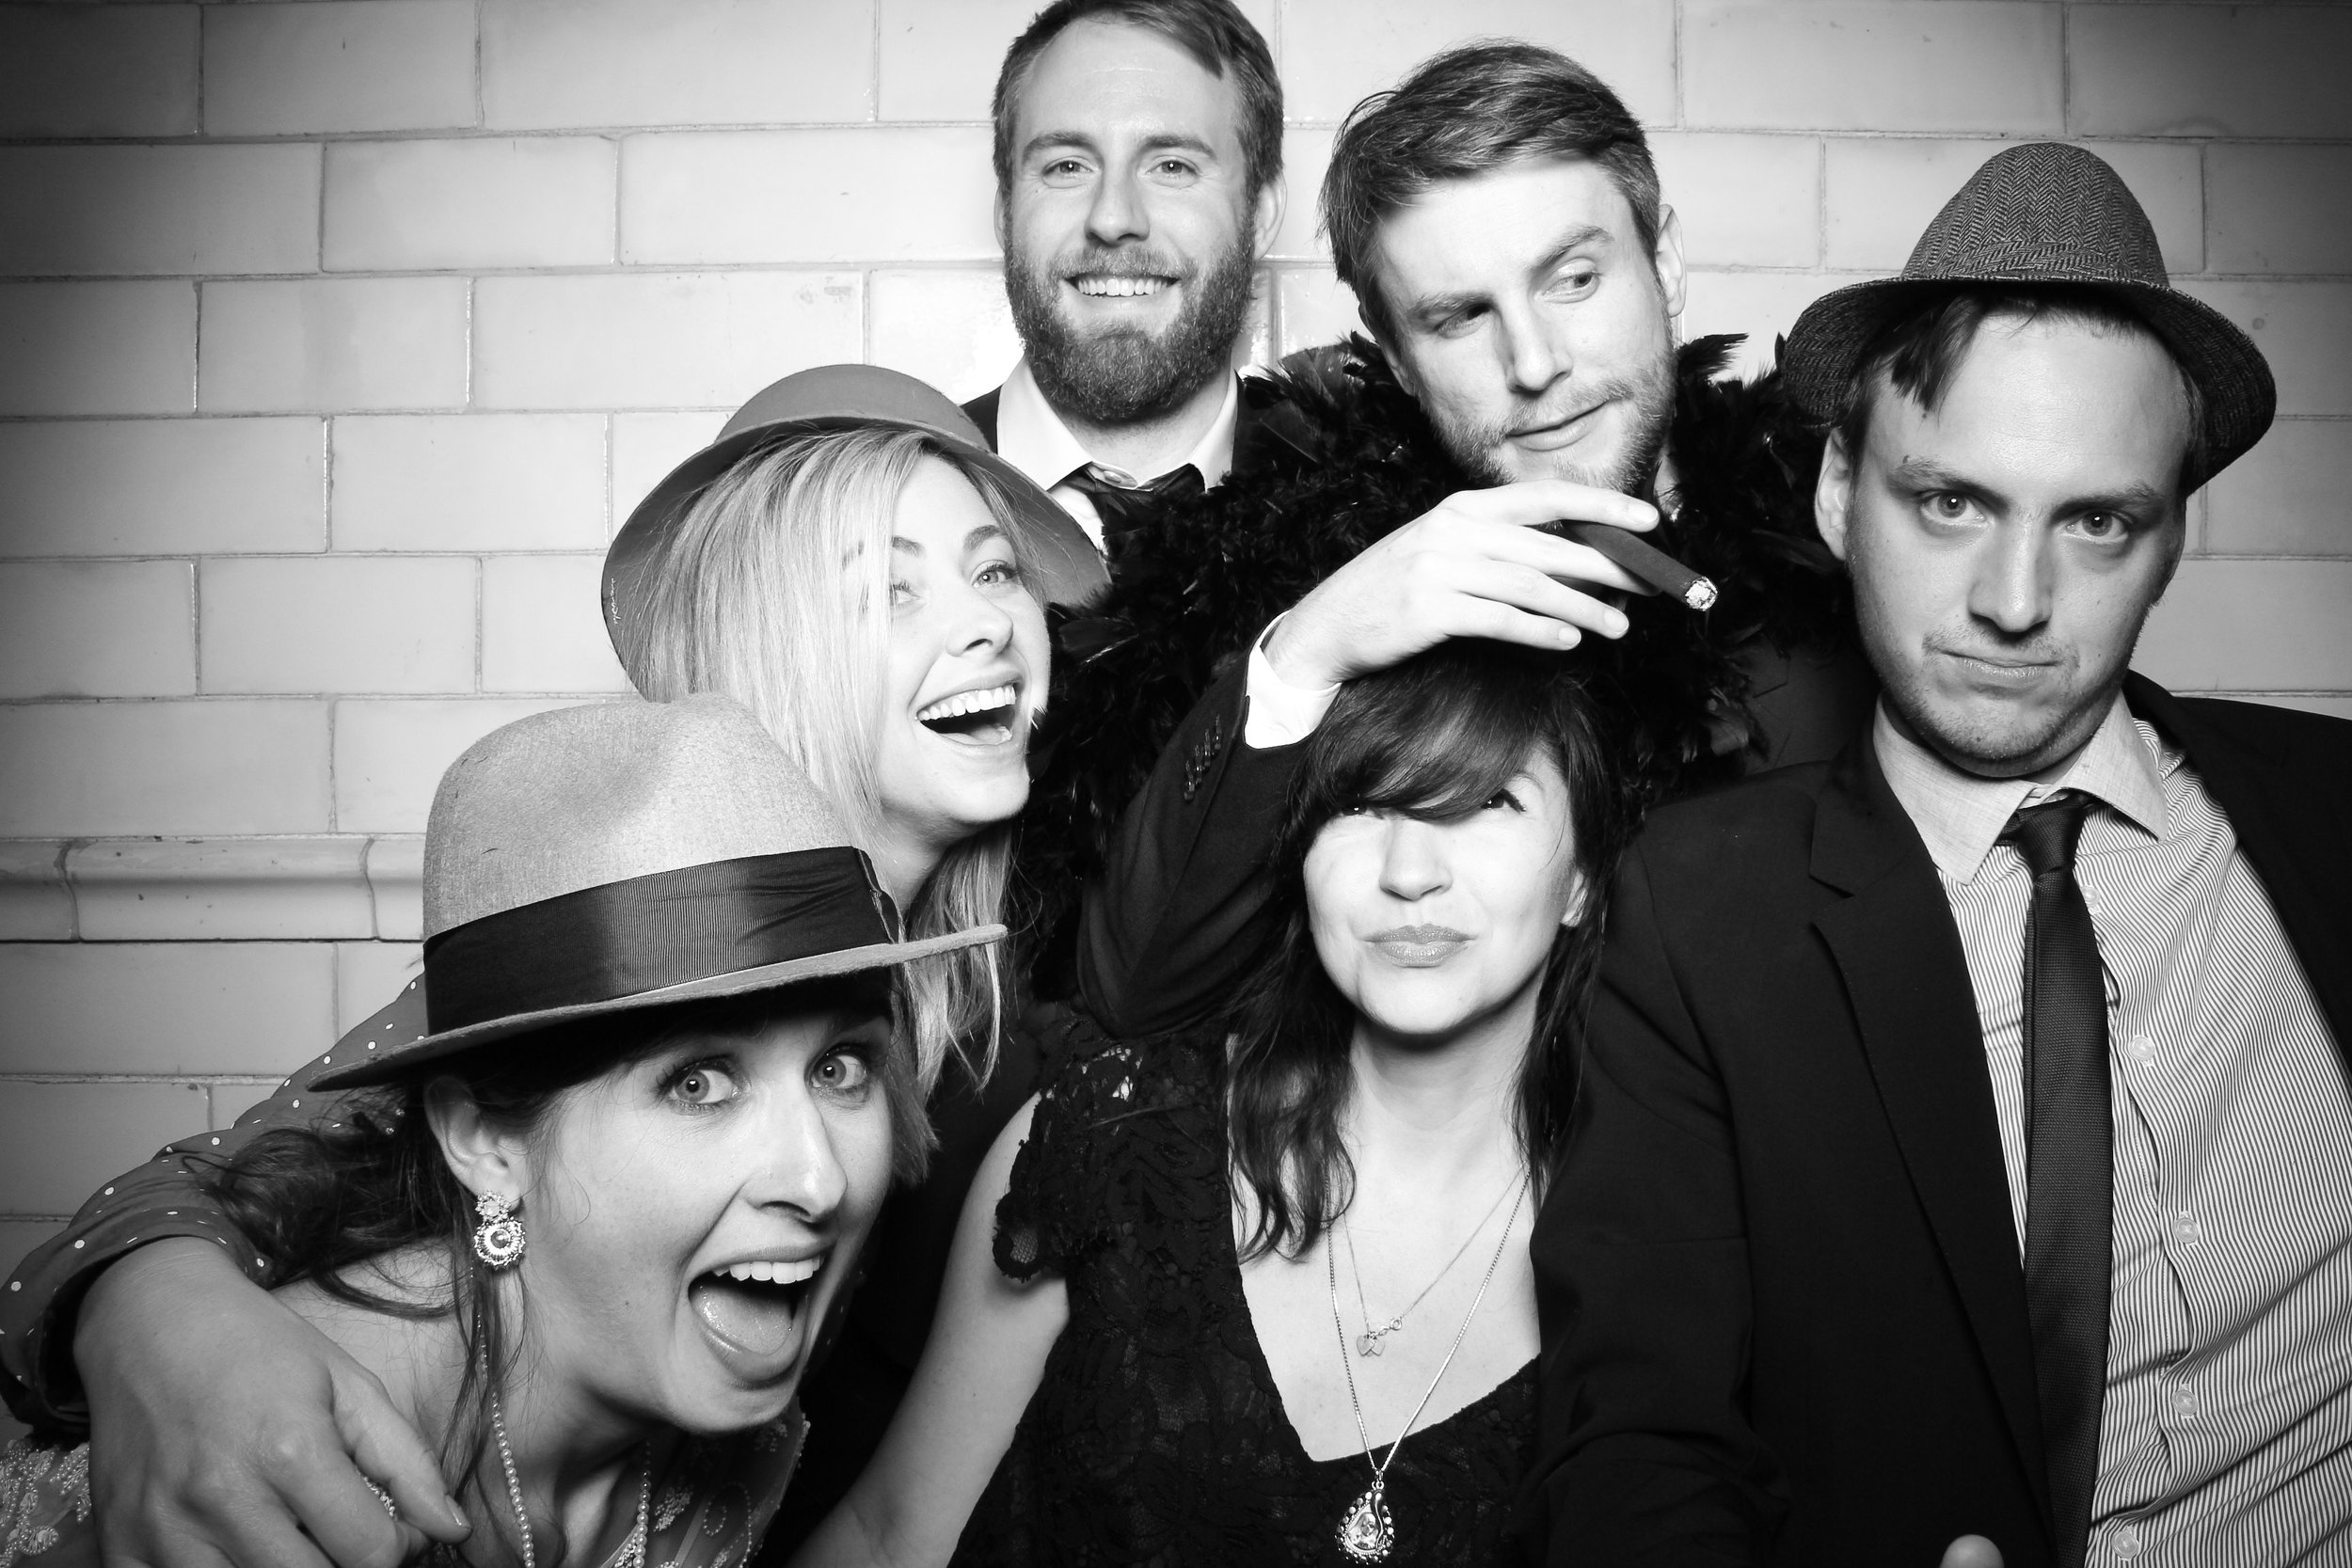 Firehouse_Chicago_Edgewater_Wedding_Reception_Photo_Booth_26.jpg